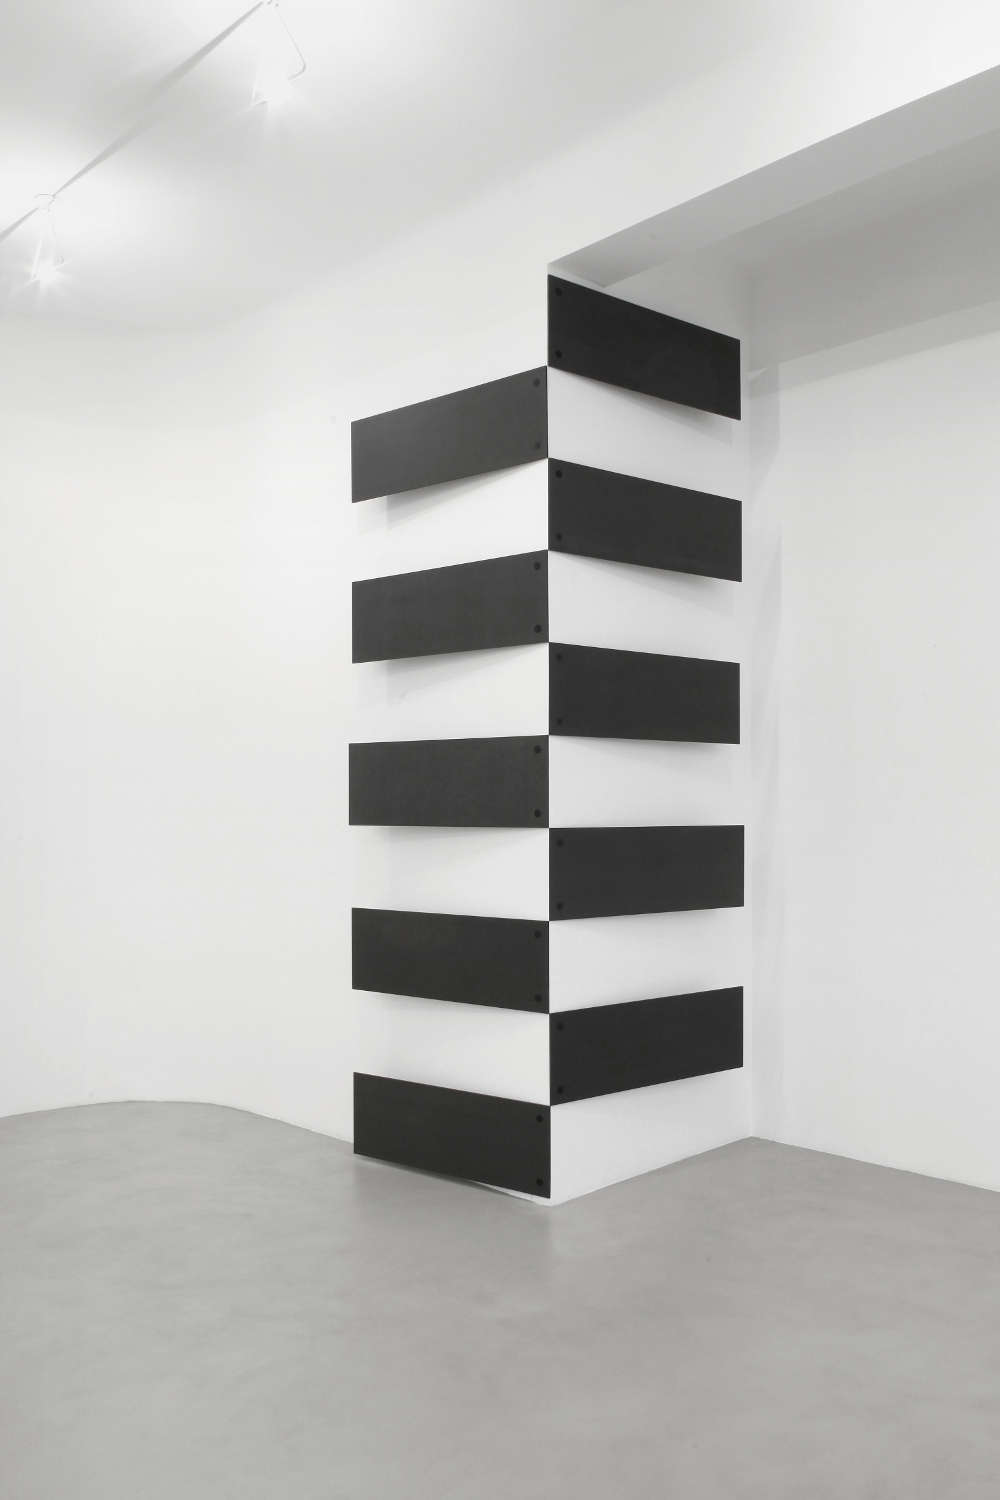 Lesley Foxcroft, Stacked (vertical corner), 2017. Black M.D.F., 350x210x17 cm